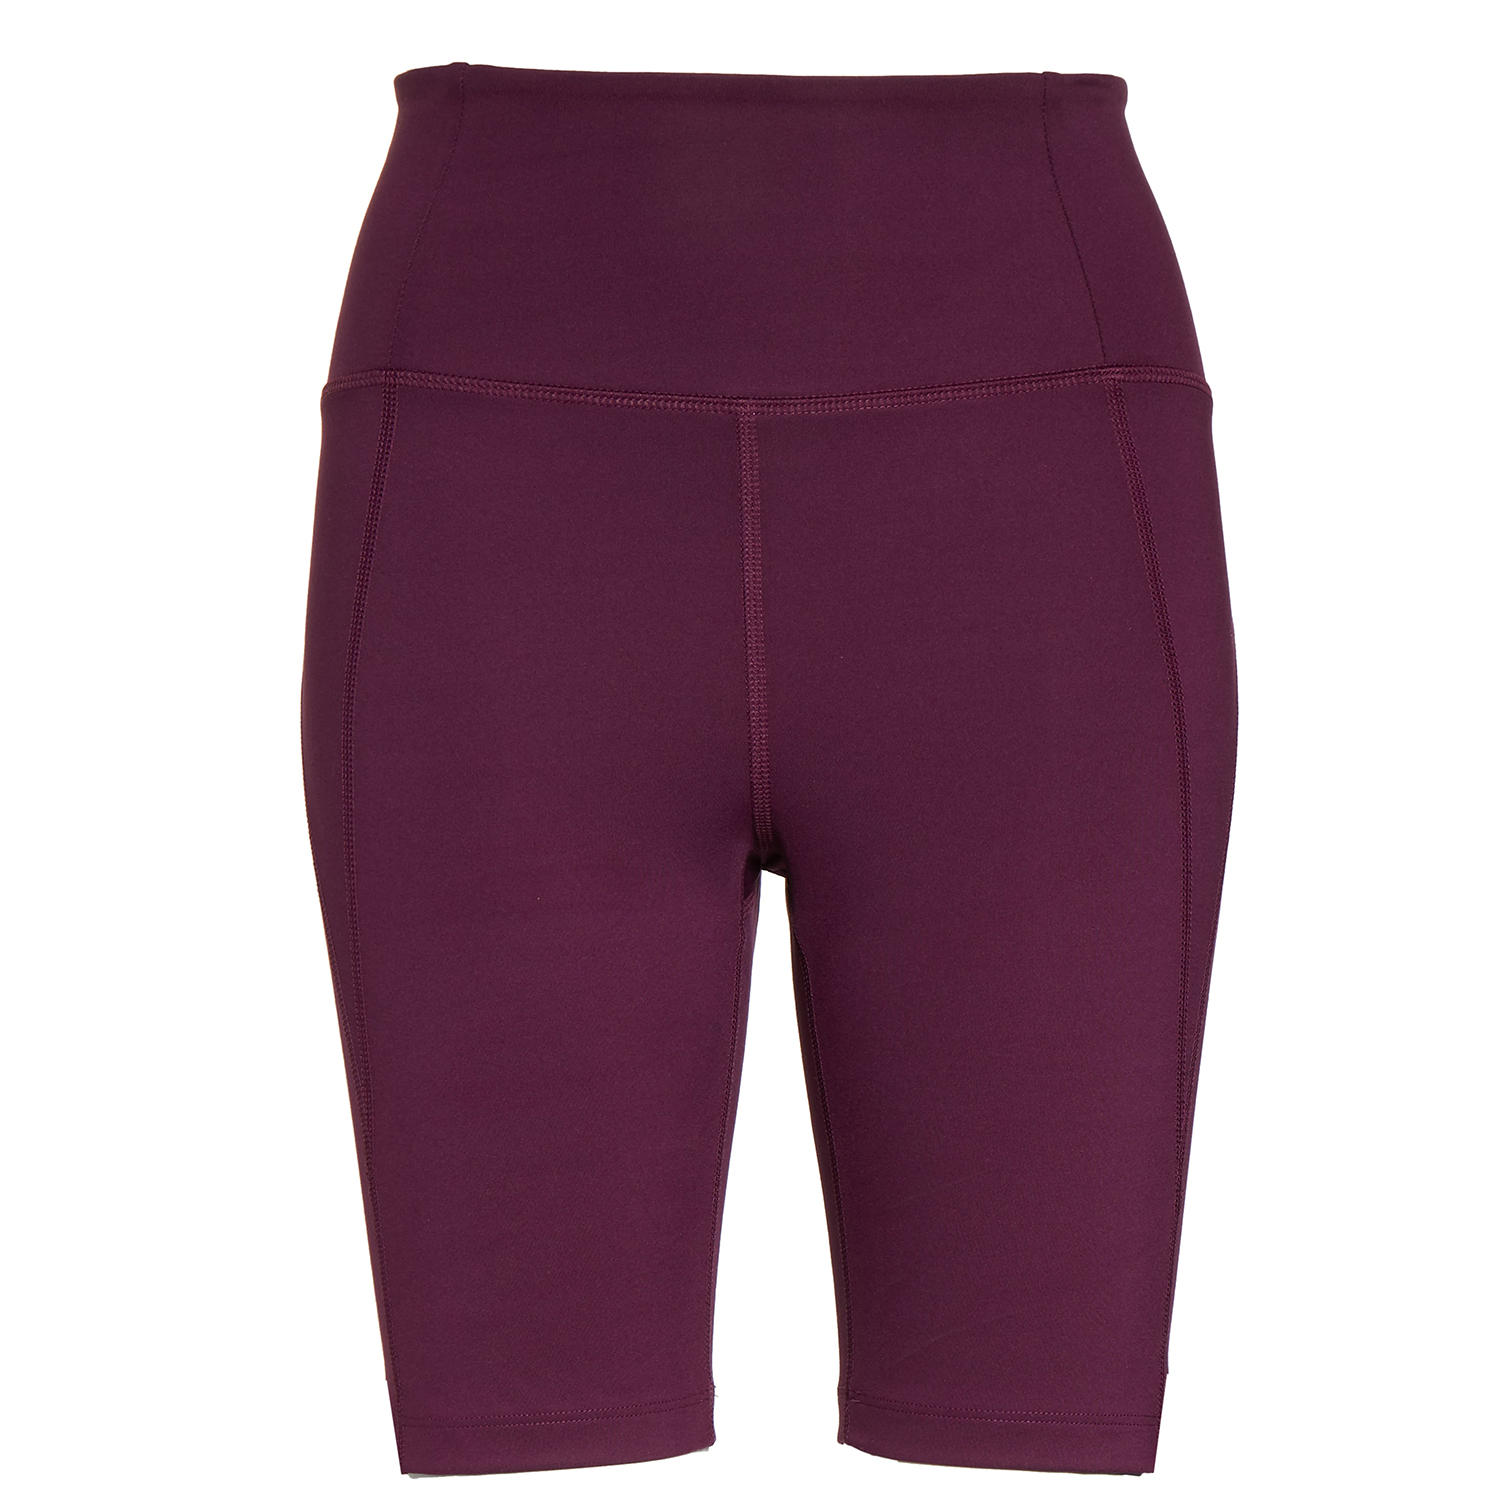 Girlfriend Collection High Waist Bike Shorts Plum